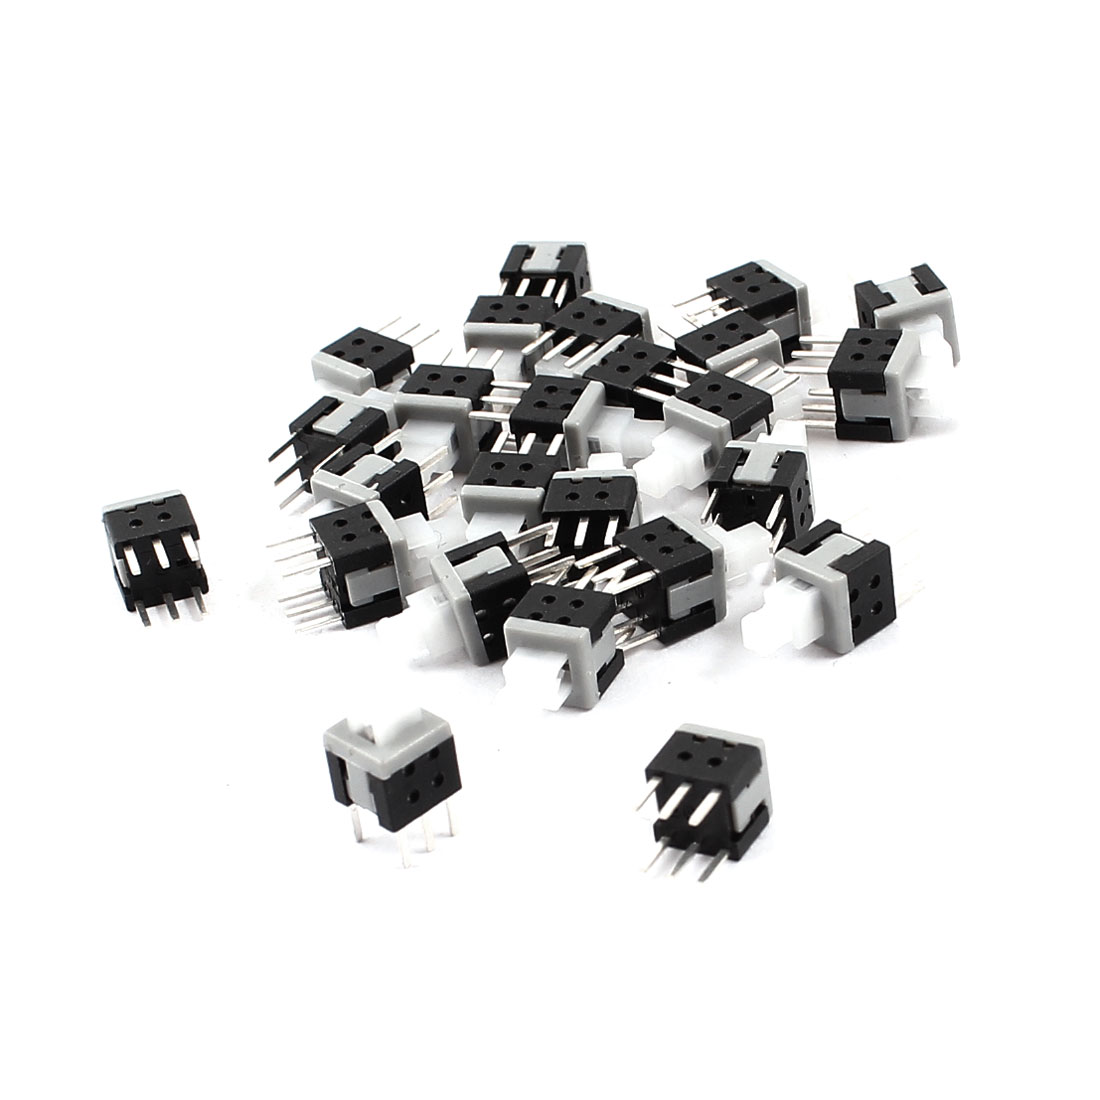 25Pcs 6 Pin Square 5.8mmx5.8mm Self-Locking DPDT Mini Push Button Switch